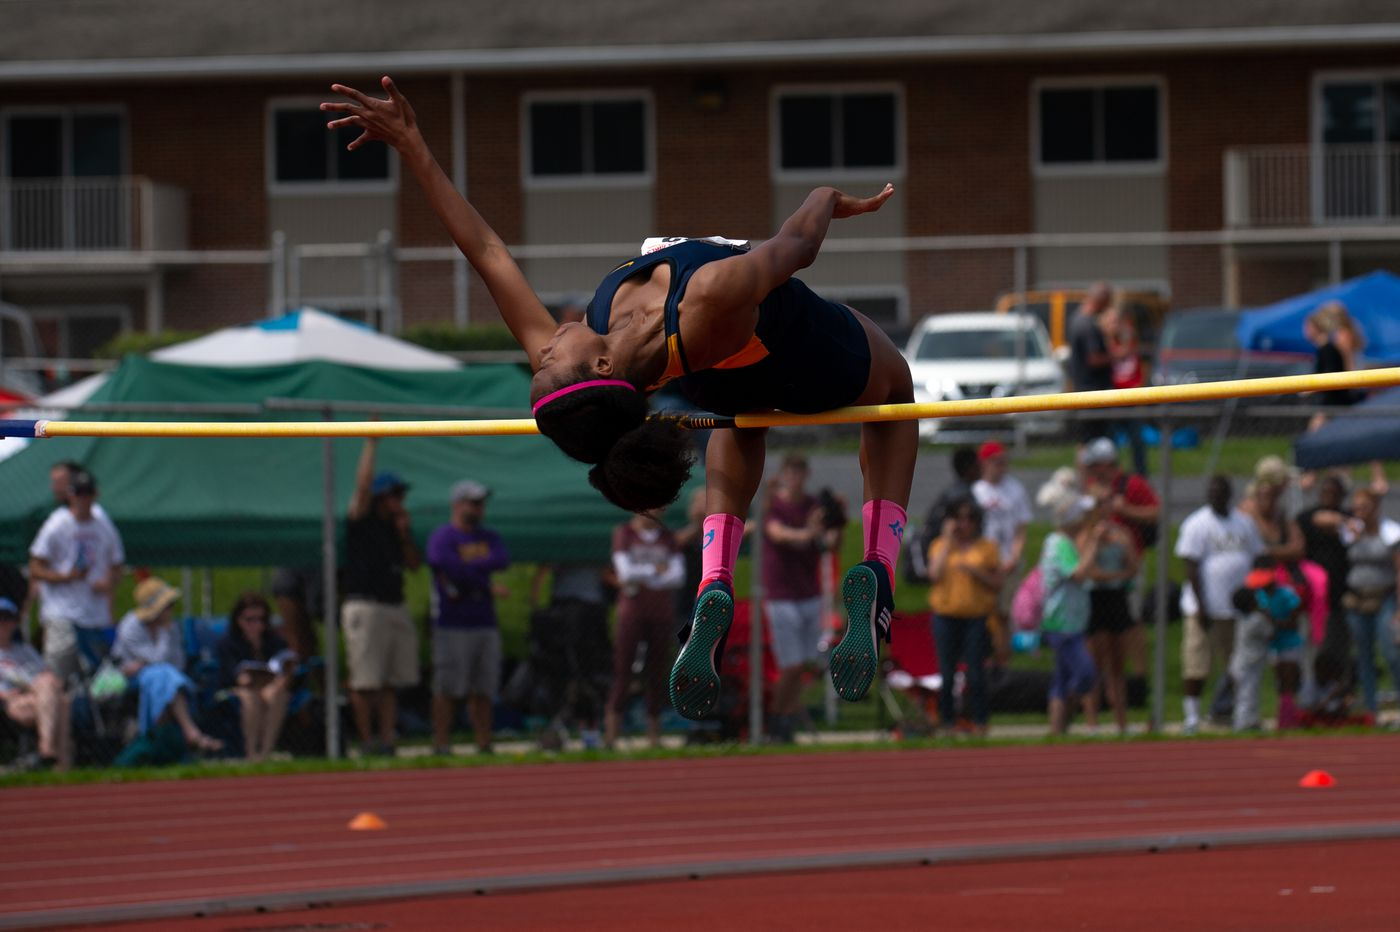 PIAA state track and field championships: Full results from